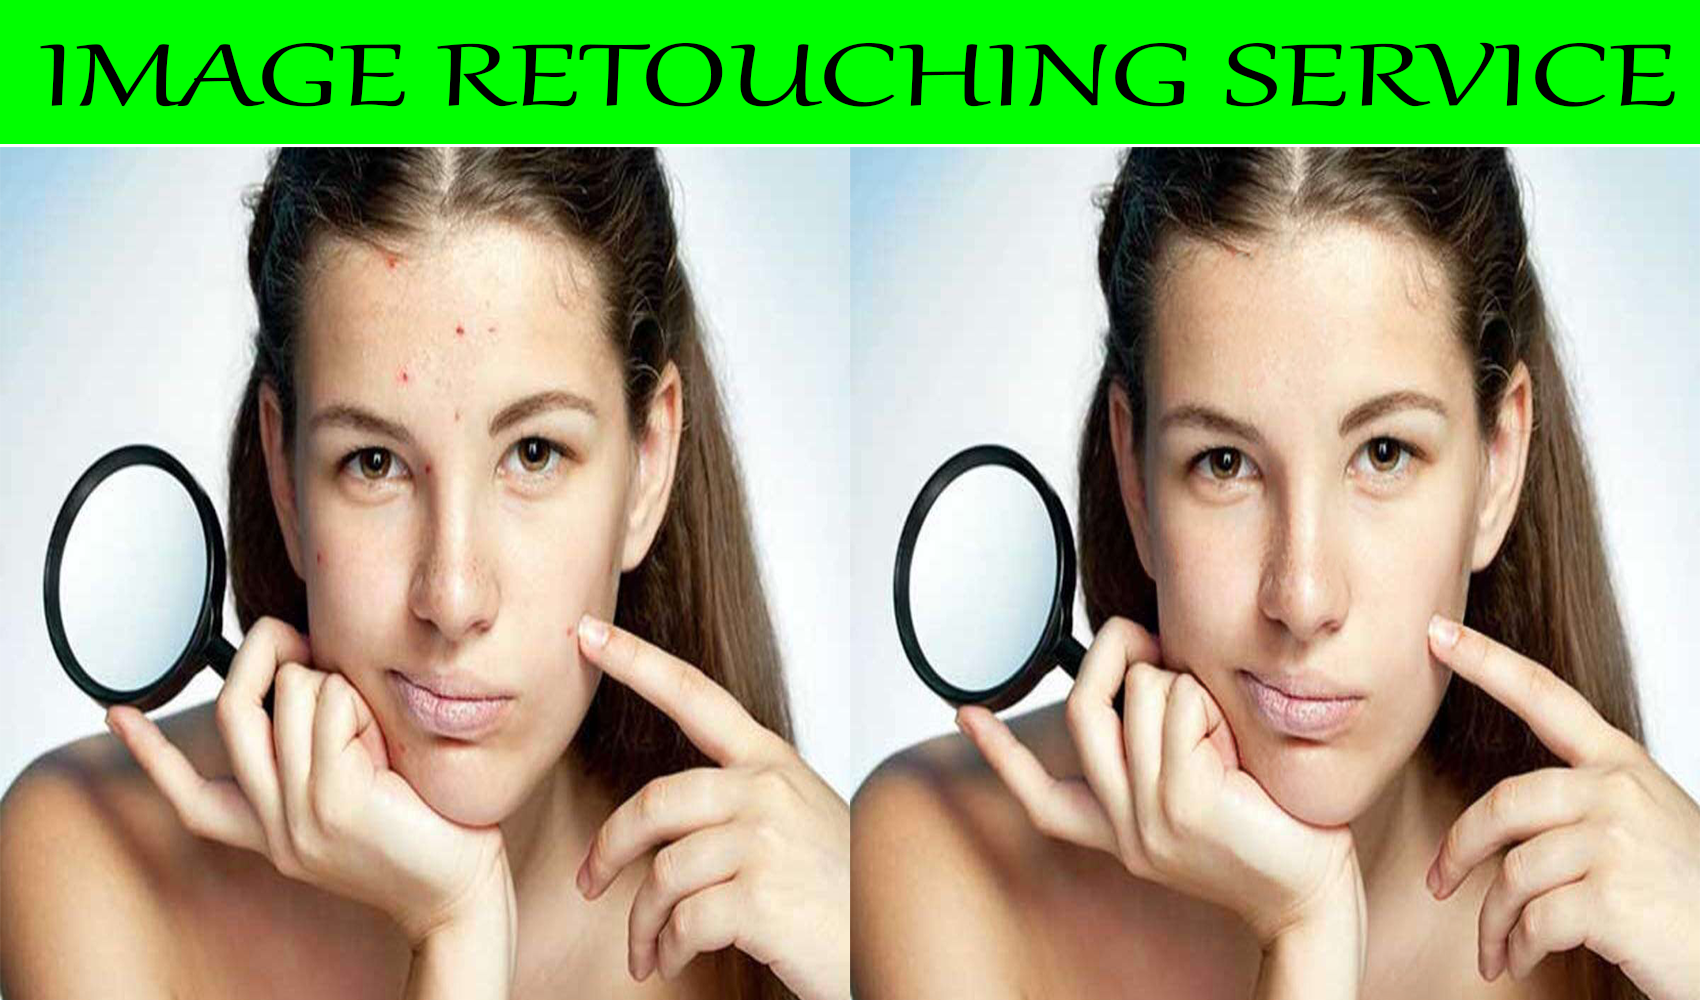 I will do image retouch of your photo